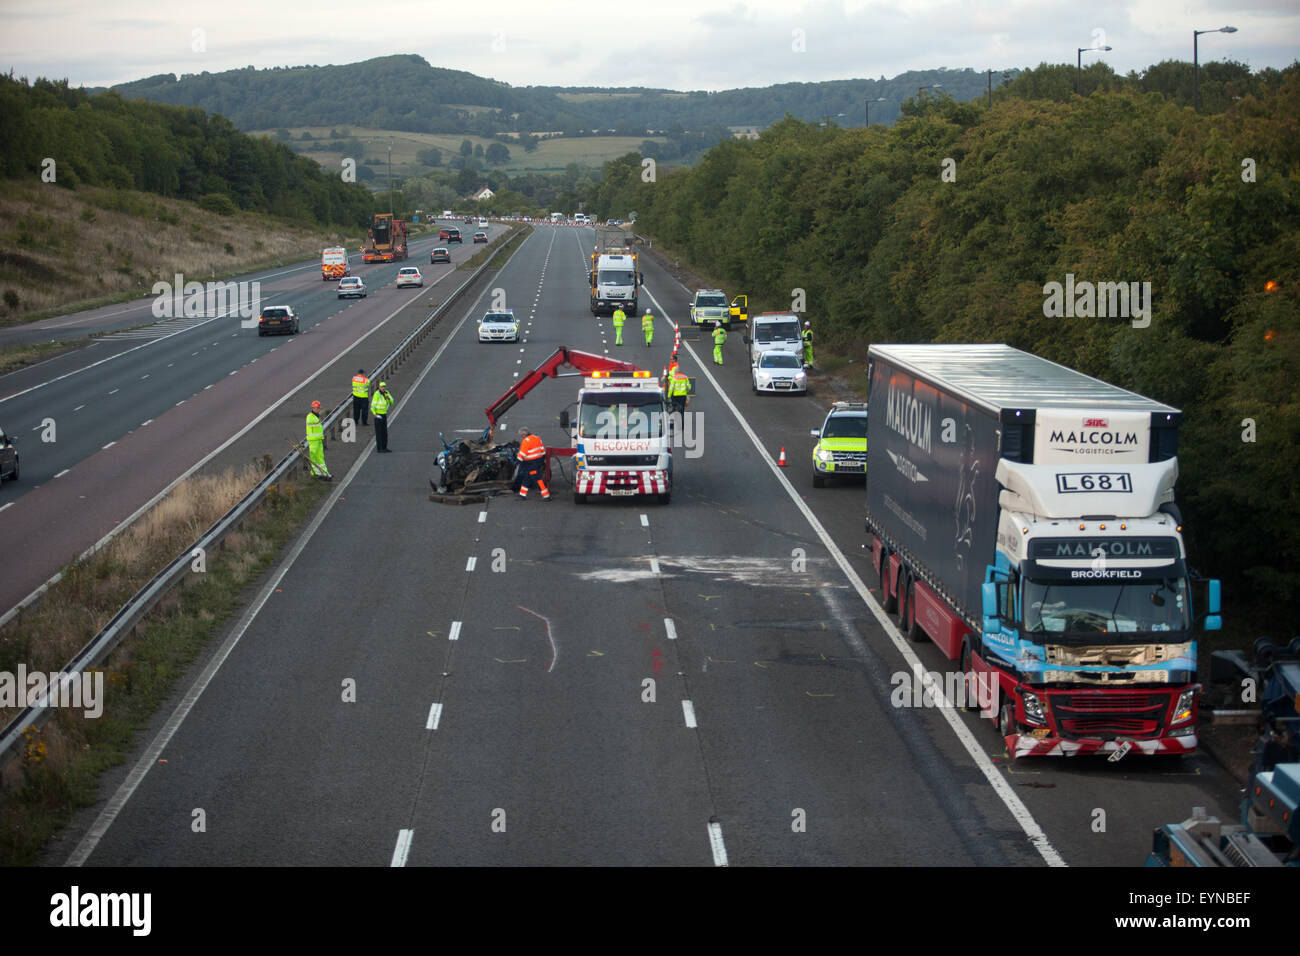 Emergency services attend a traffic accident that completely closed the southbound carriageway of the M5 on Saturday evening as thousands of holiday makers headed towards the South West coastal resorts. The incident occurred alongside Michaelwood Services - Police diverted traffic off the motorway, through the service area to rejoin the M5. Photo: South West Photos, Alamy Live News Stock Photo